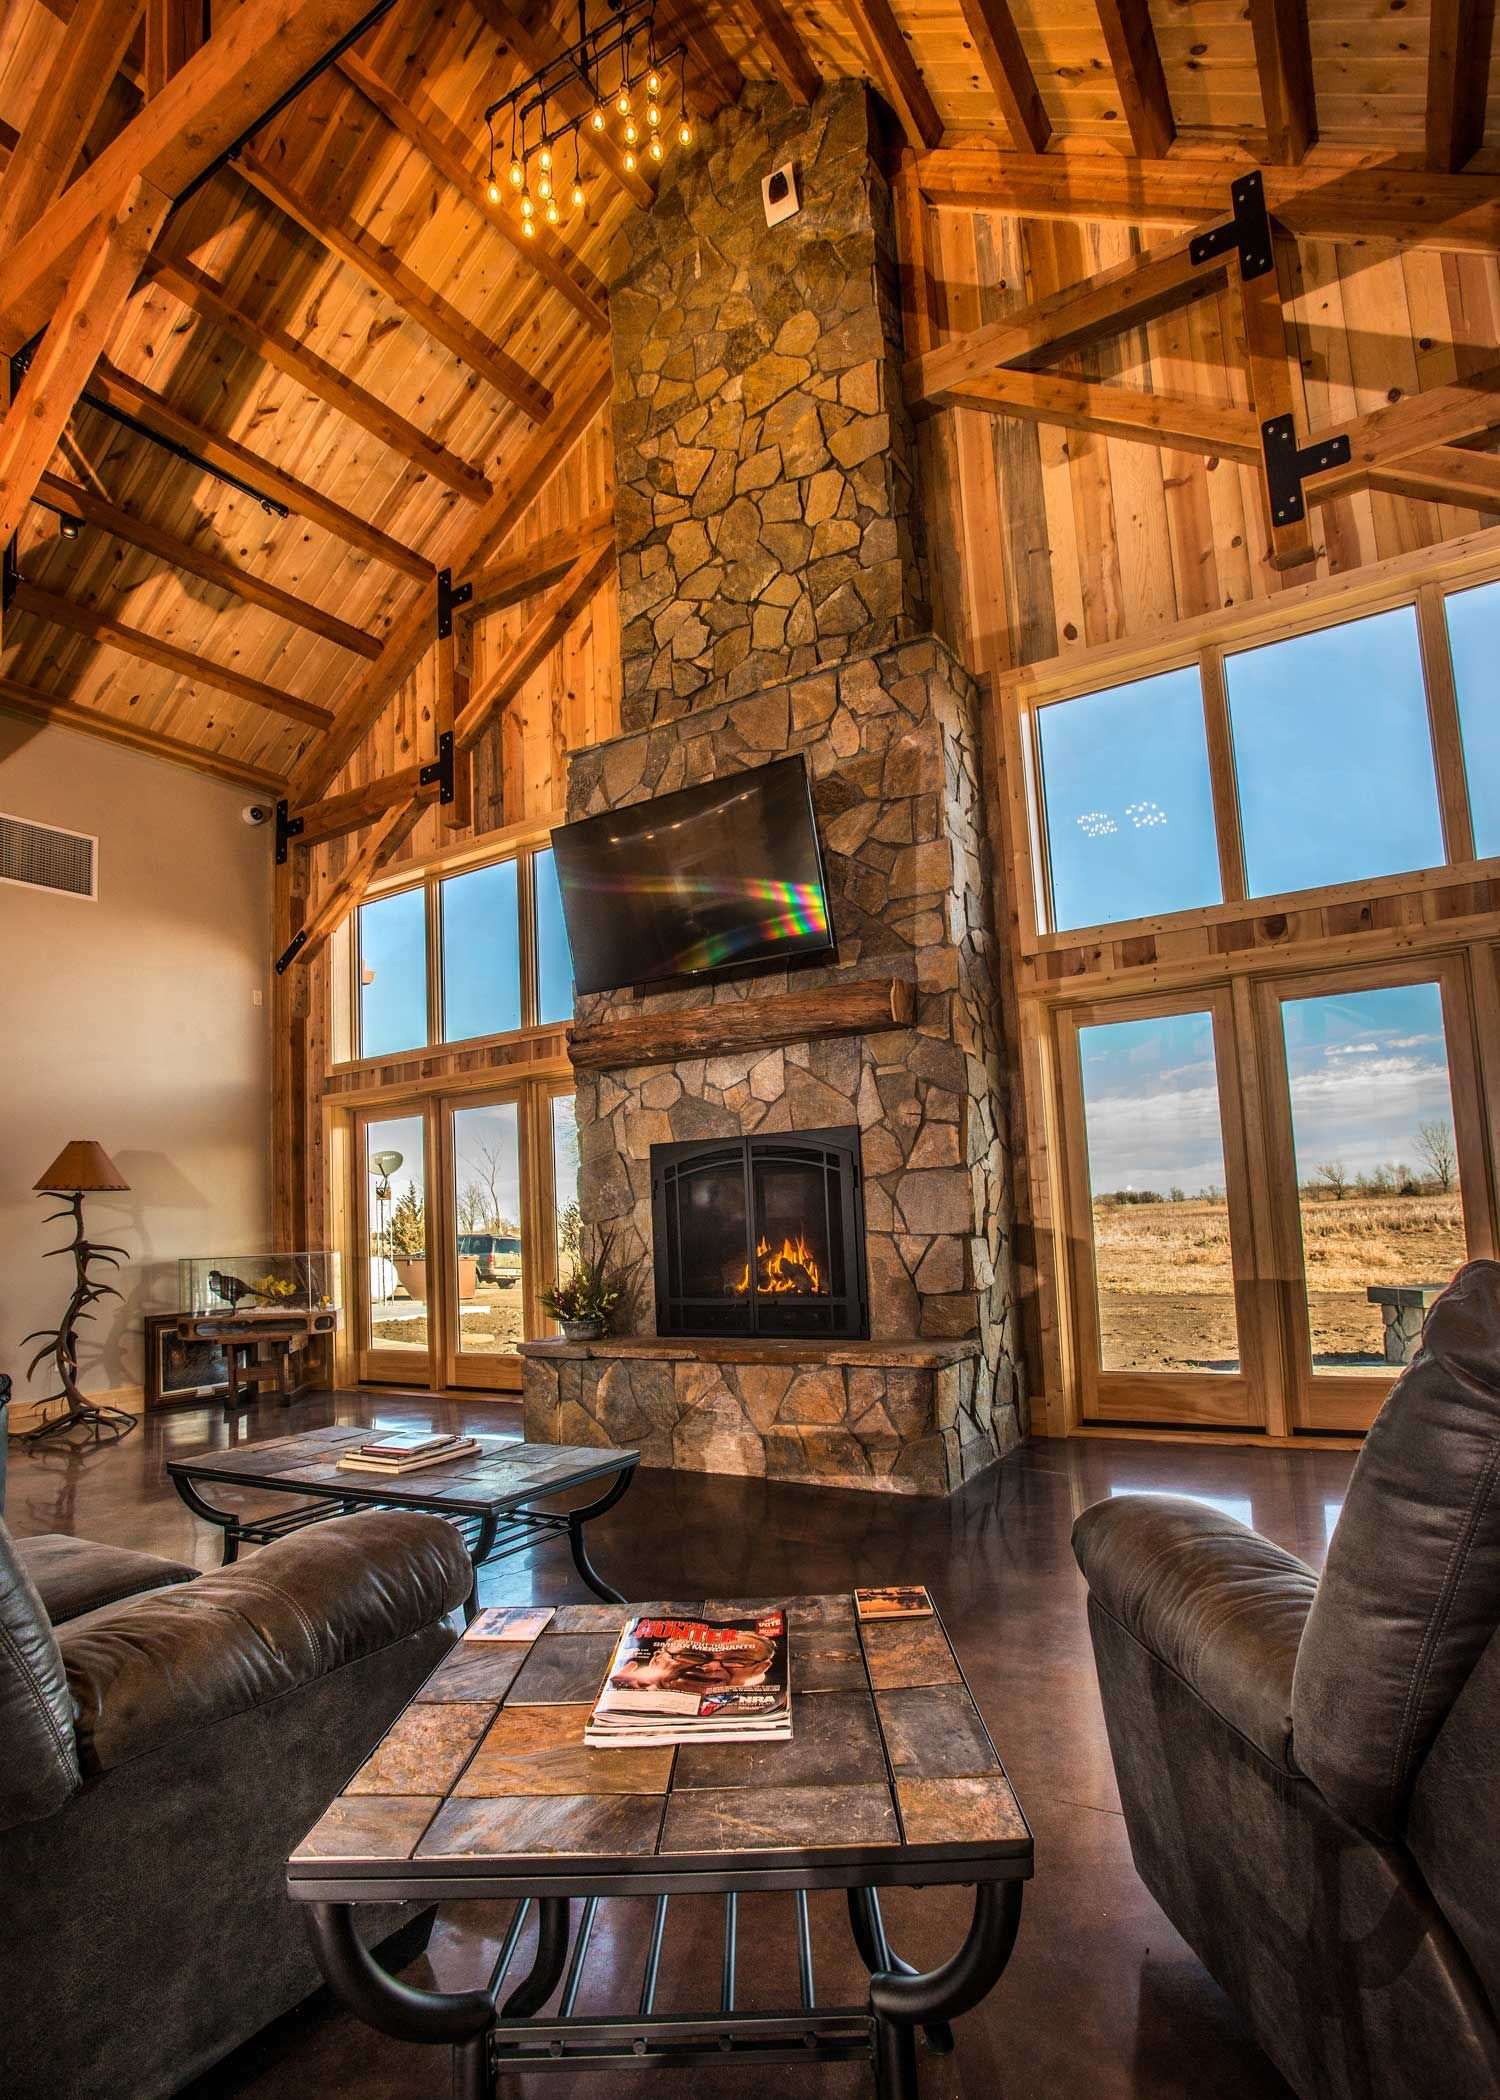 Fireplaces Great Rooms And Room: Interior Rustic Lodge Great Room With Scenic View And Fireplace